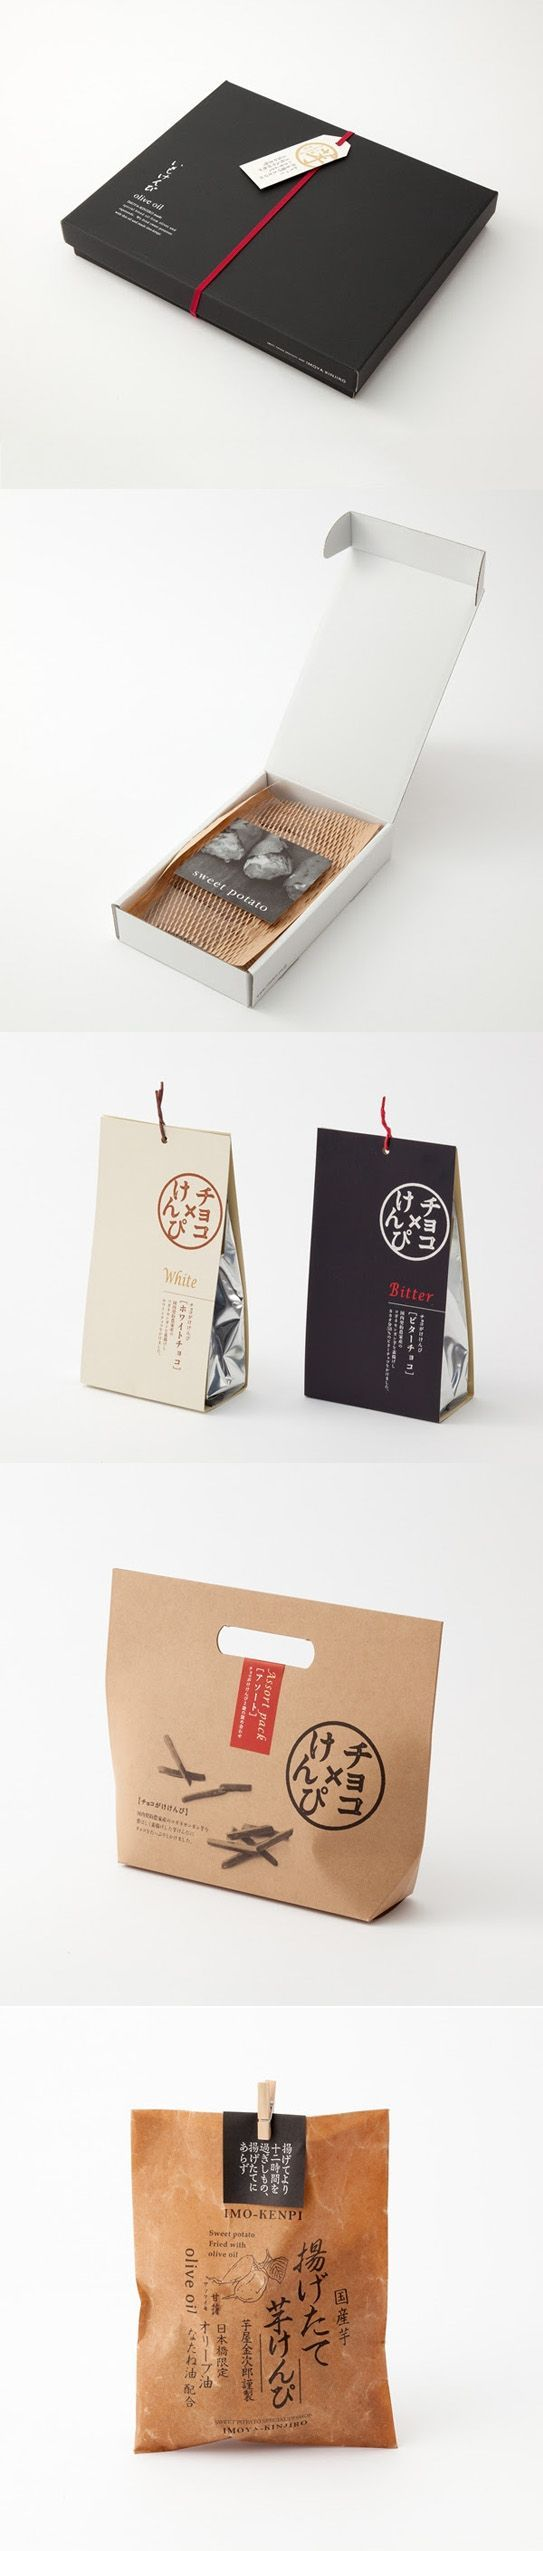 Unique Packaging Design on the Internet, Imoya Kinjiro #packagingdesign #packaging #design